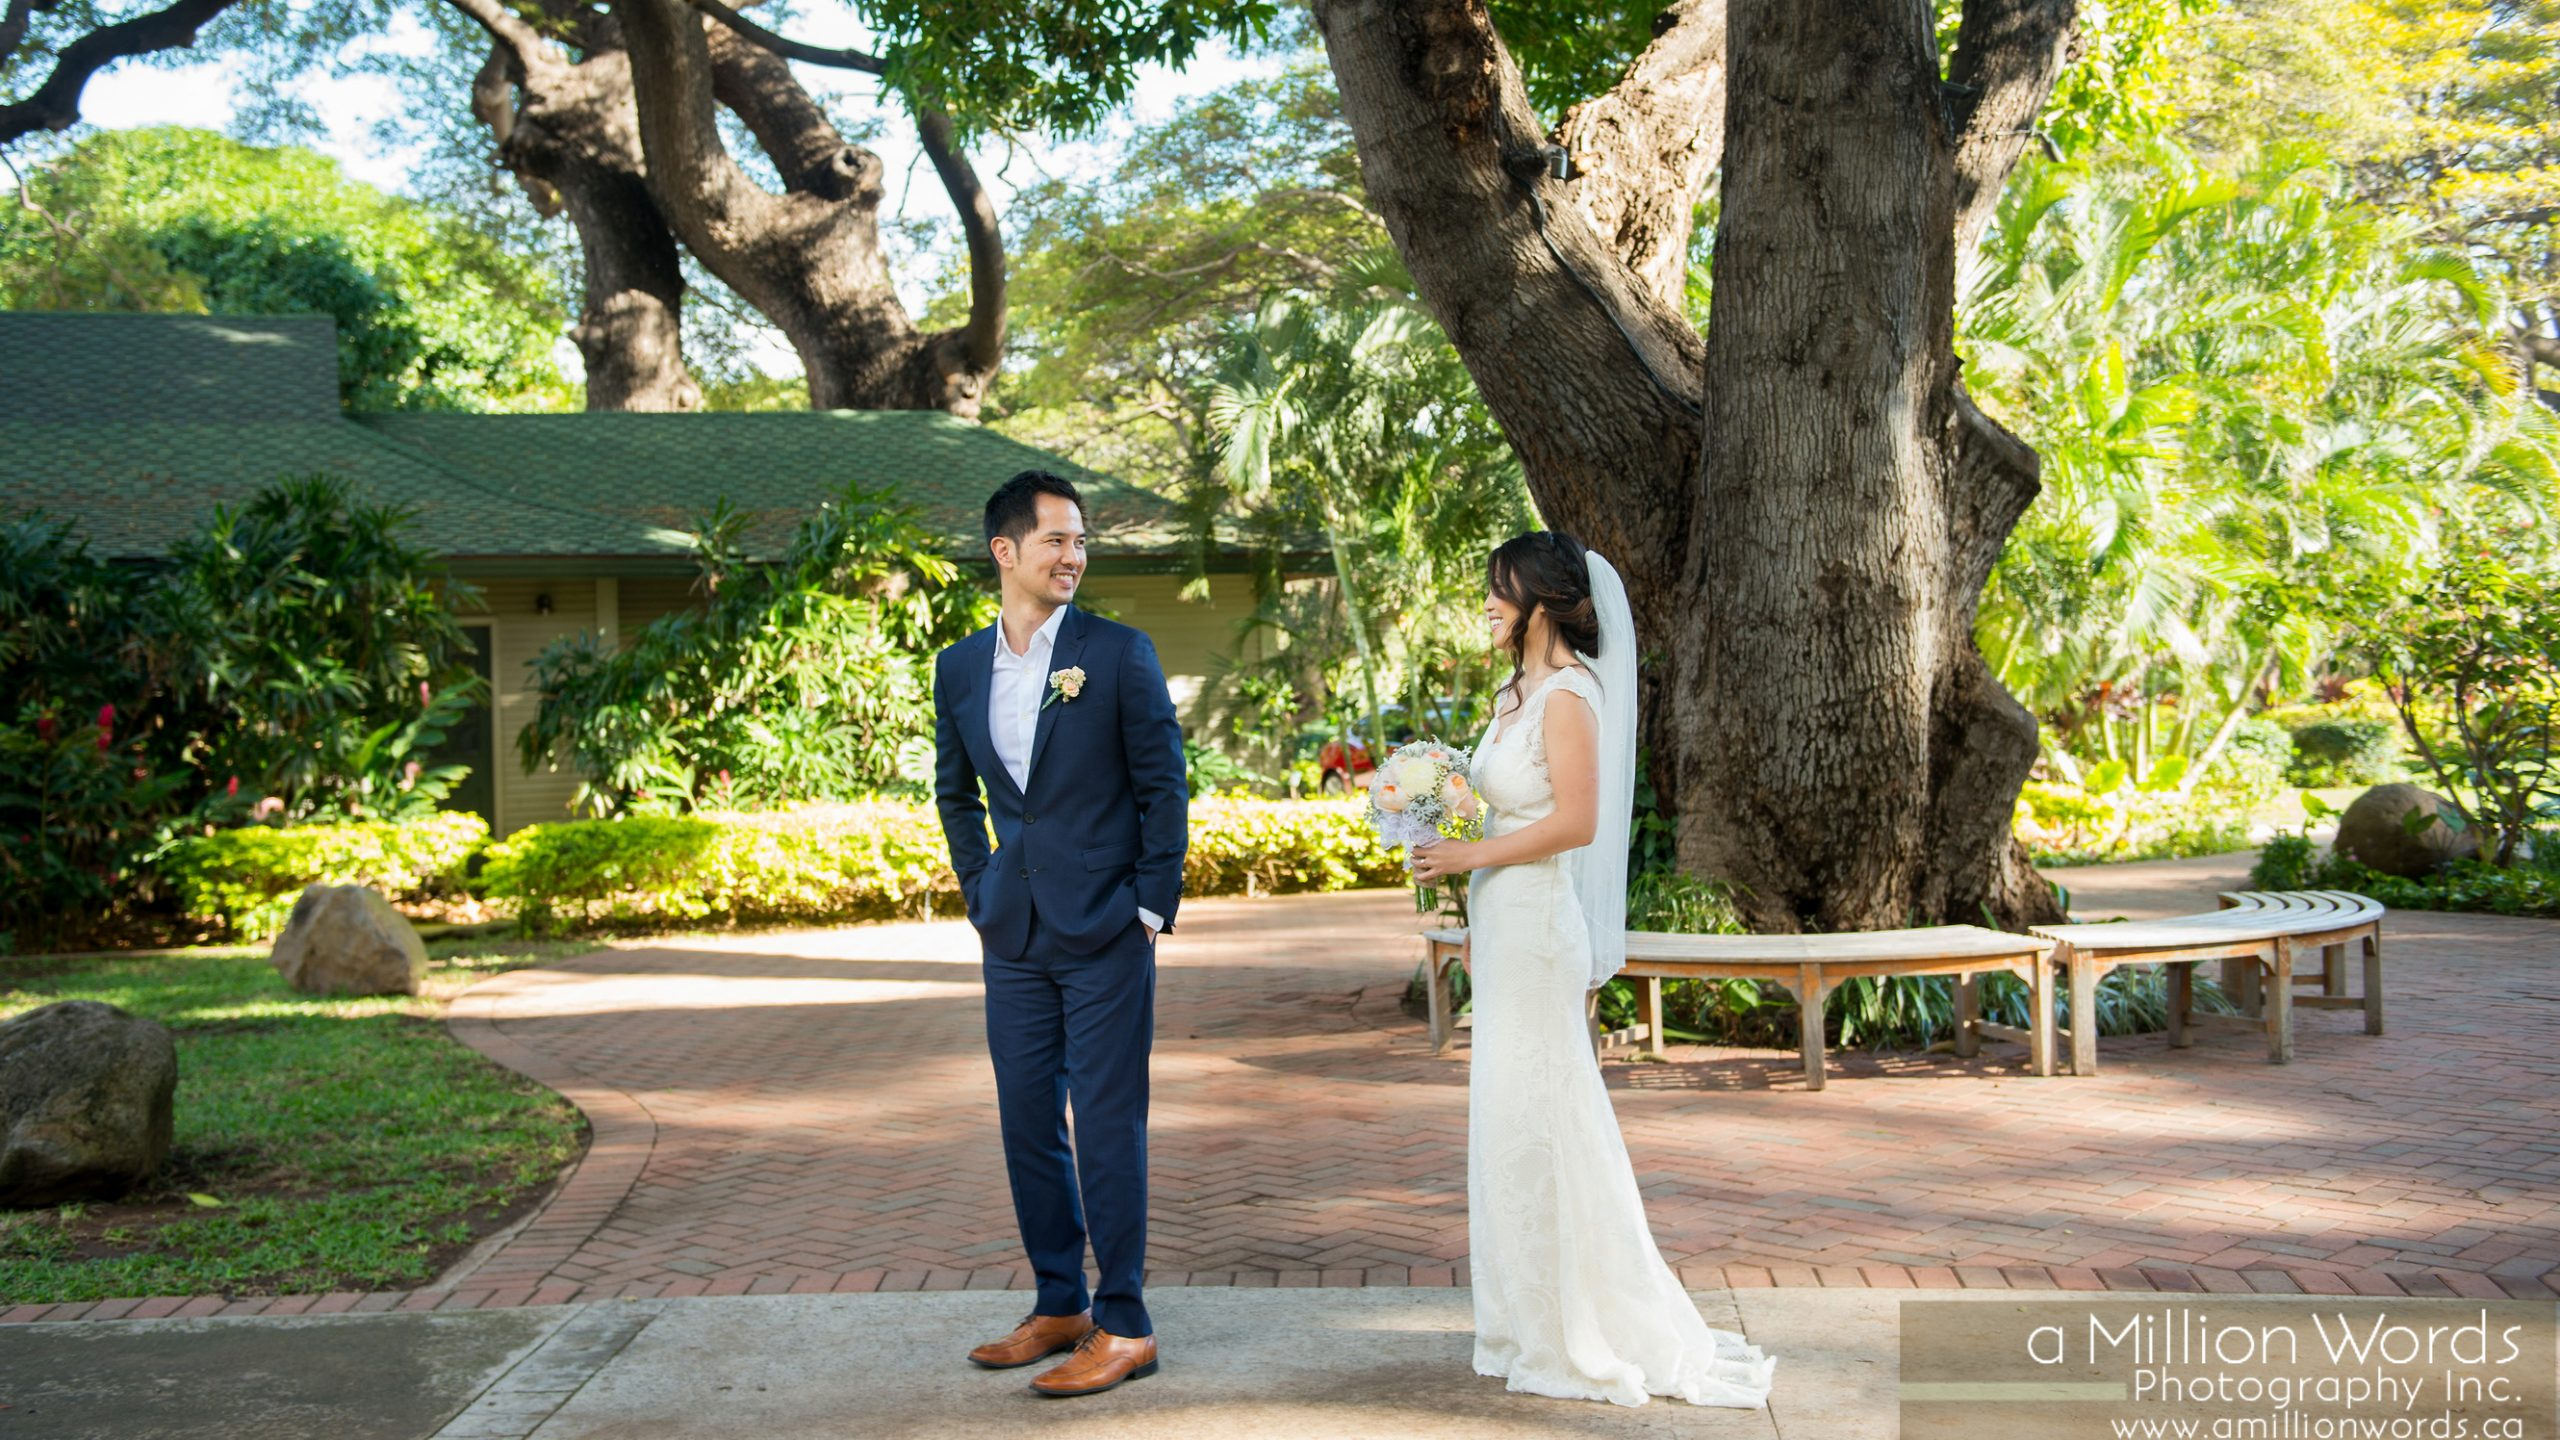 kw_destination_wedding_photography18